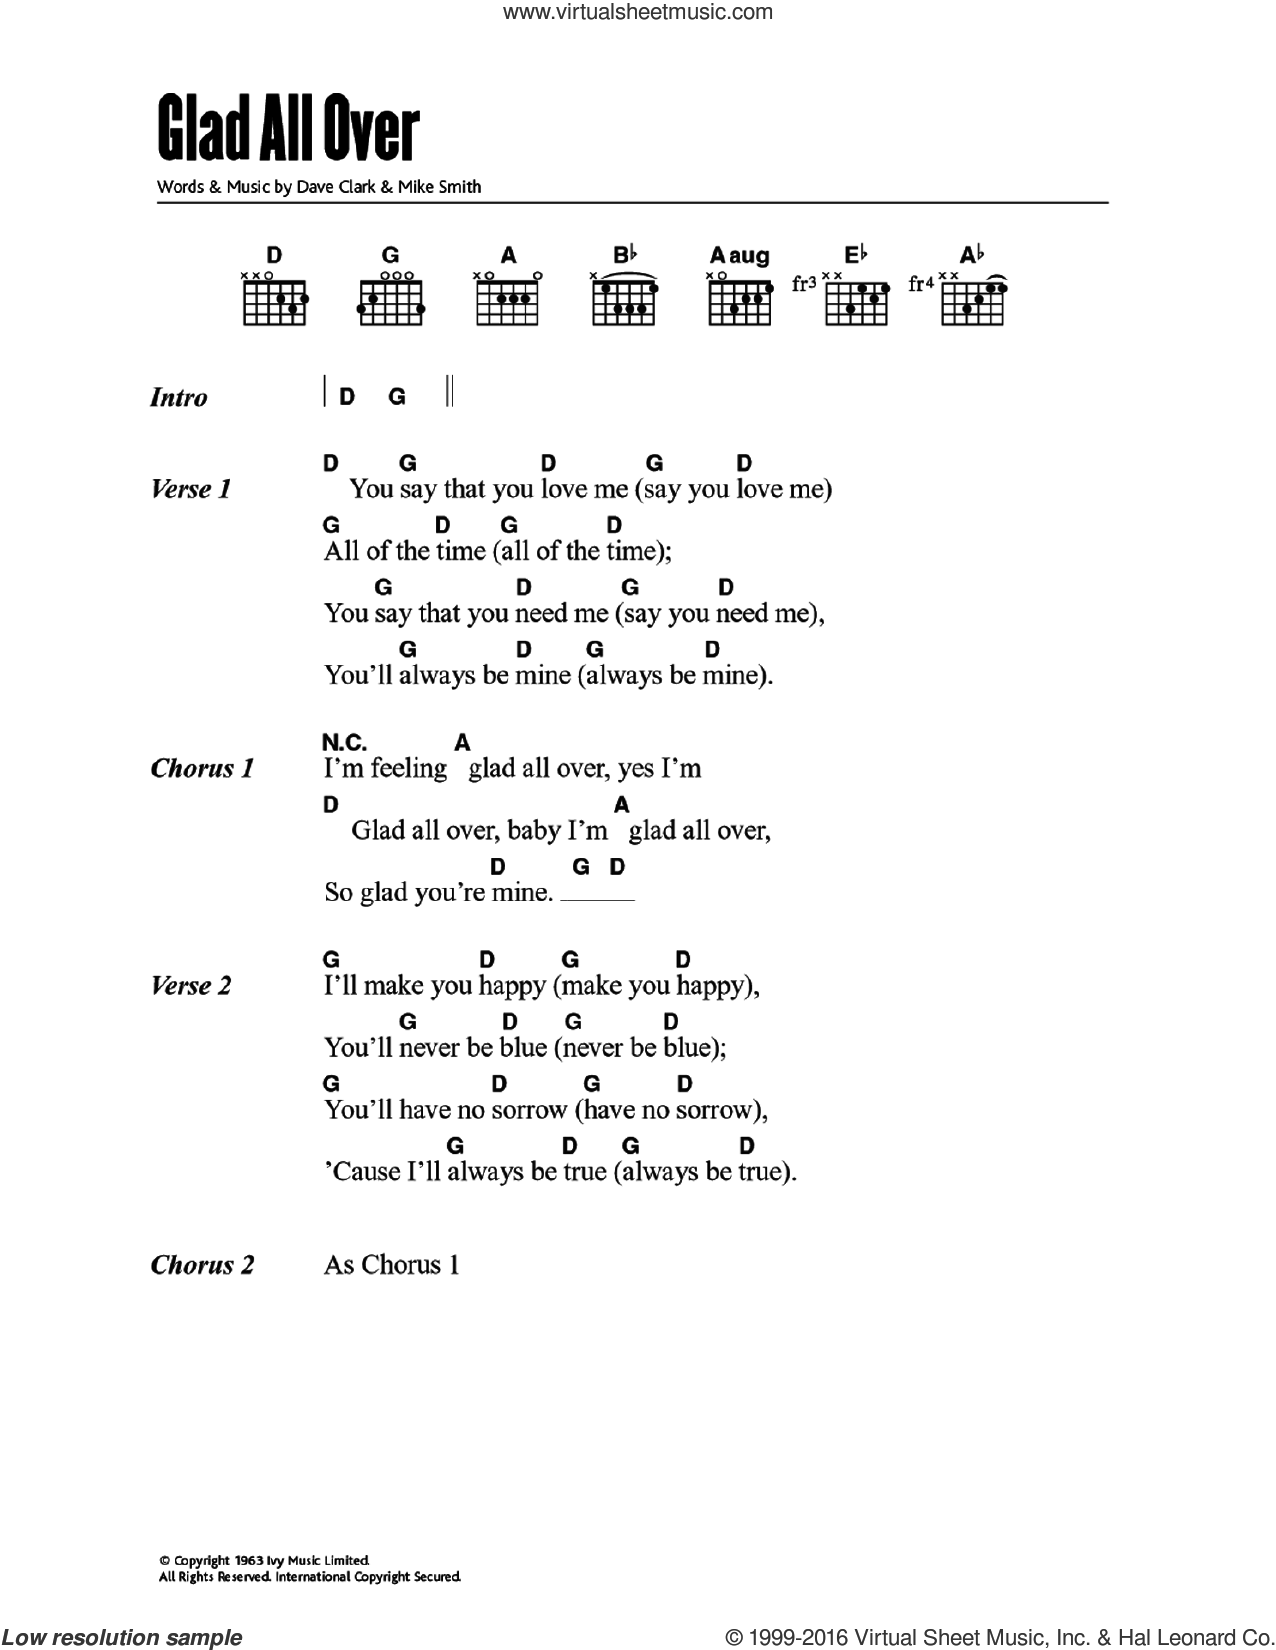 Glad All Over sheet music for guitar (chords) by The Dave Clark Five, Dave Clark and Michael W. Smith, intermediate skill level